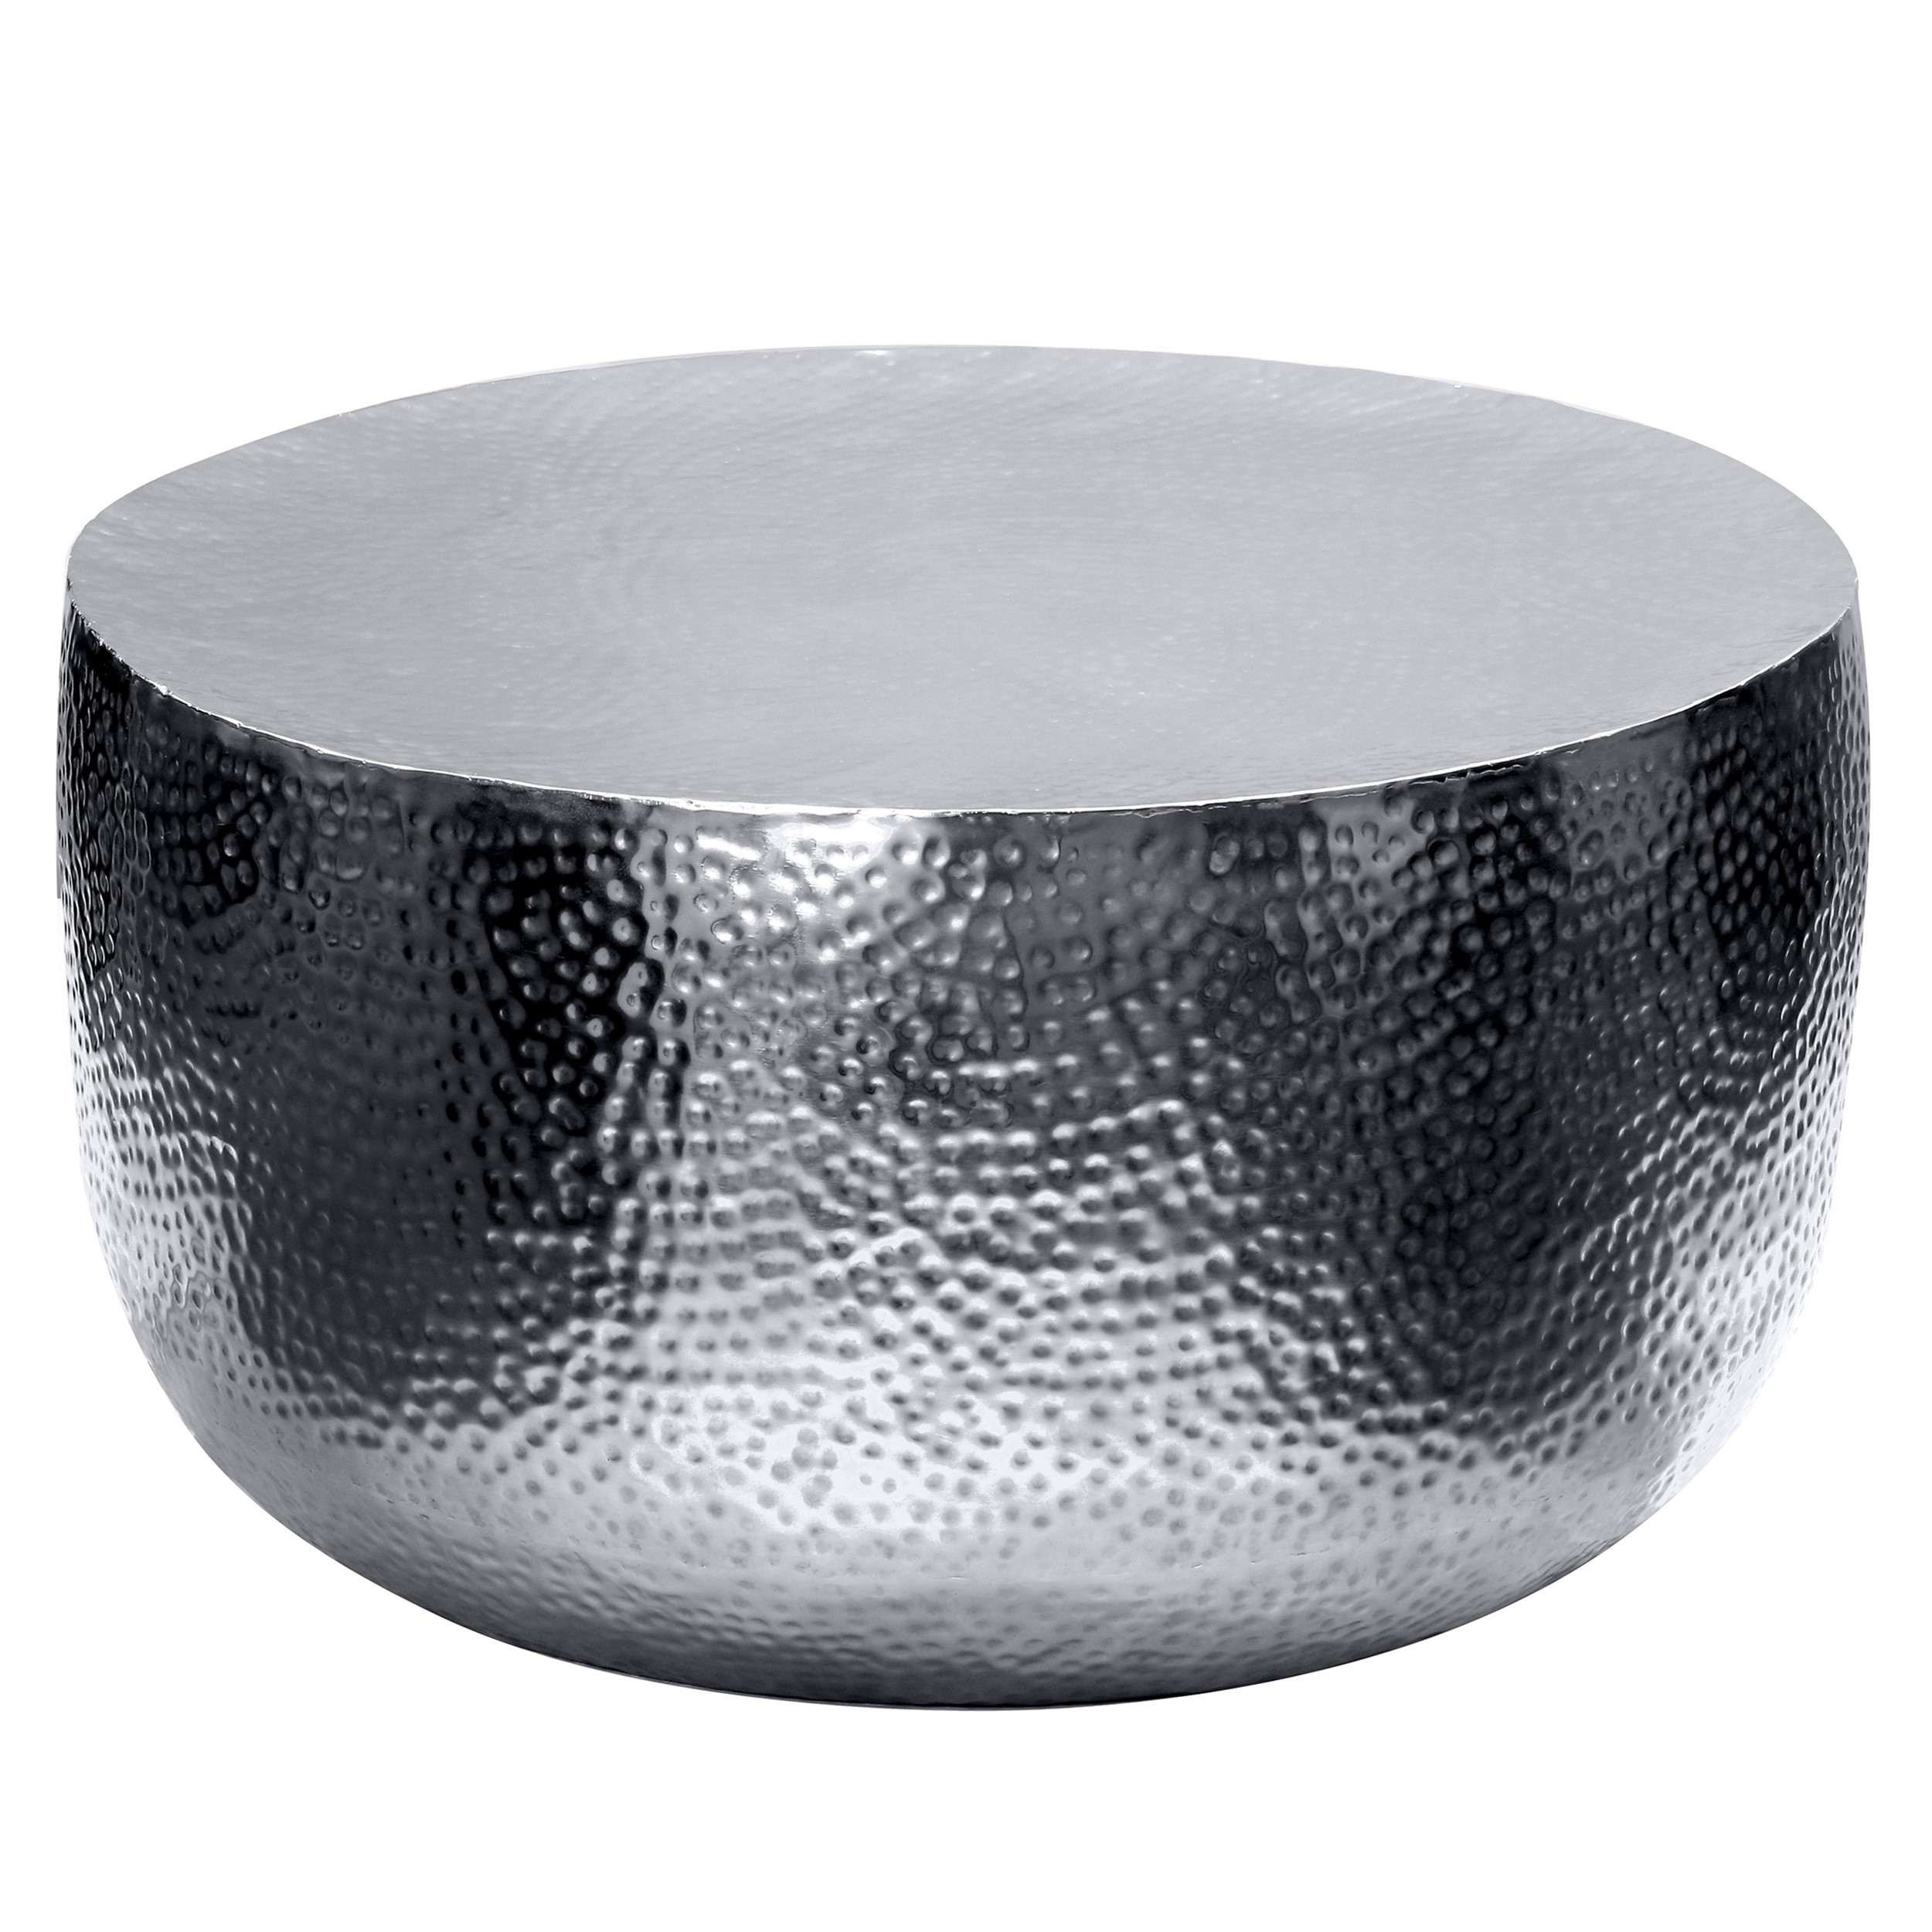 table basse m tal fulki chrome adoptez les tables basses m tal fulki chrome rdv d co. Black Bedroom Furniture Sets. Home Design Ideas